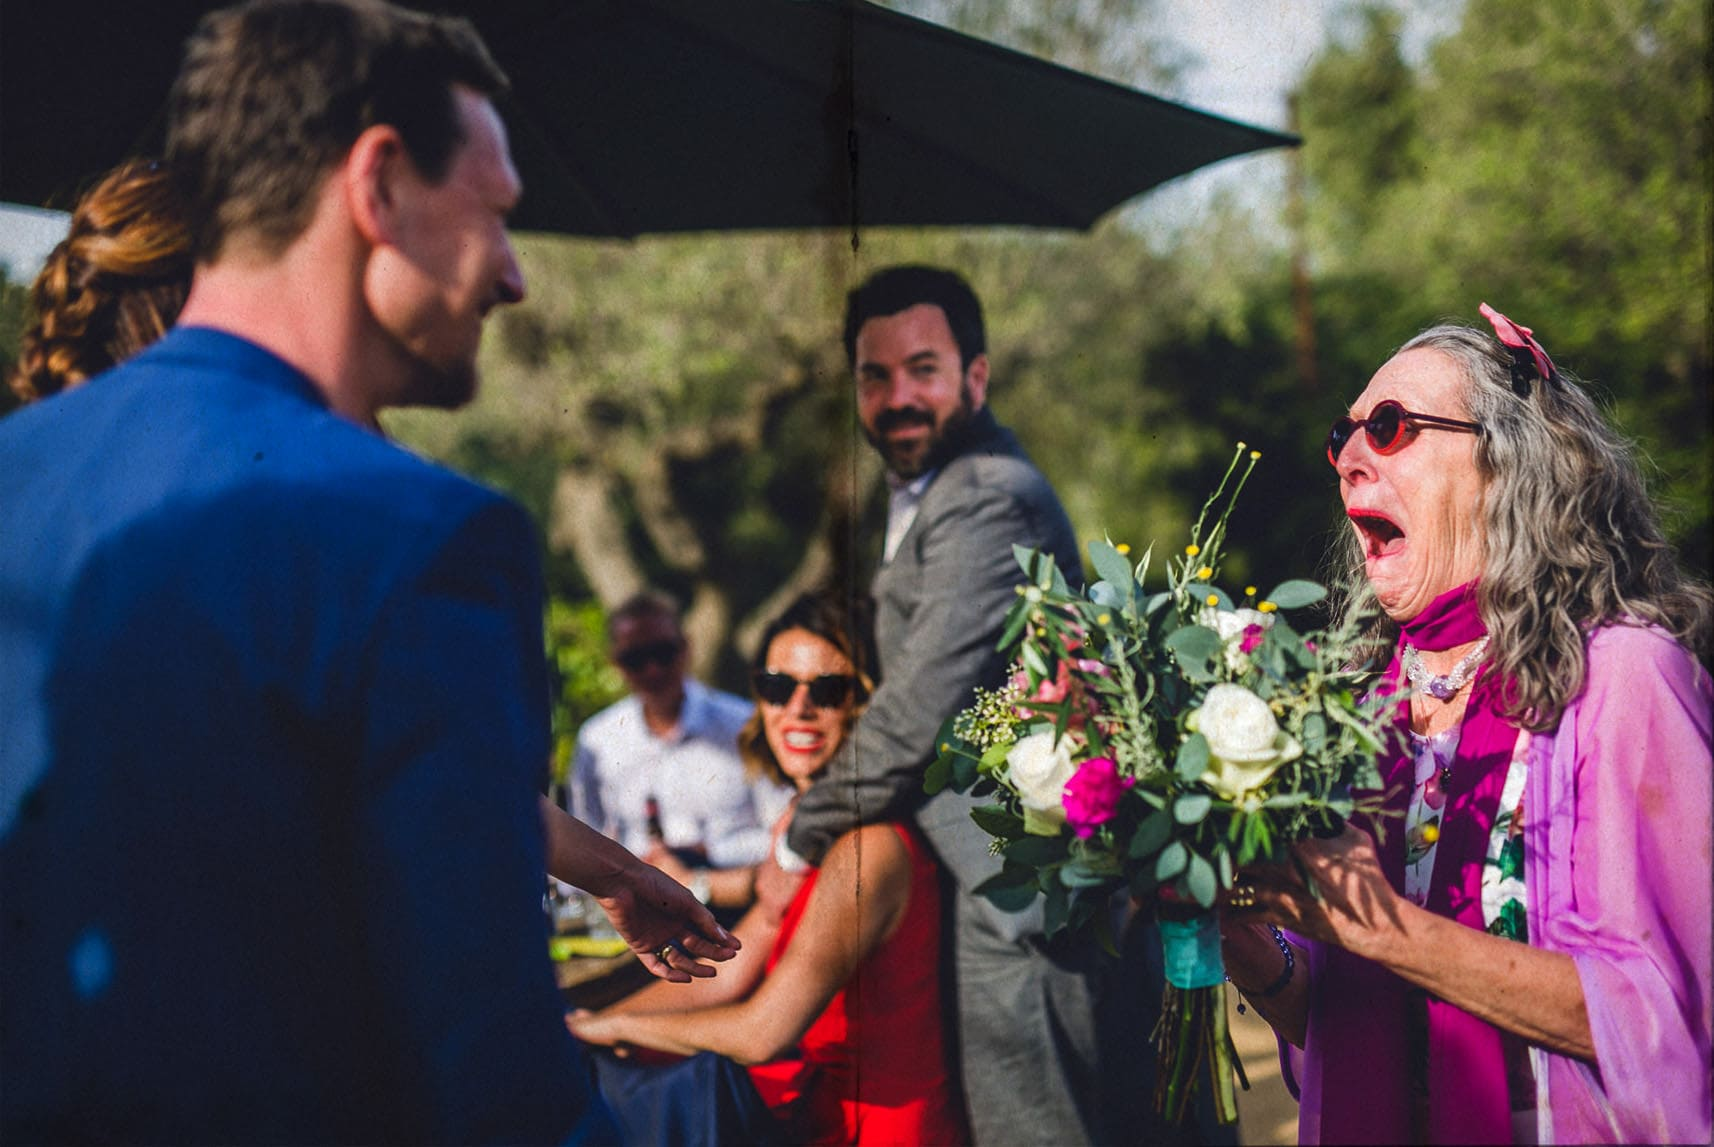 bride and groom delivered a bouquet to the mother of the groom